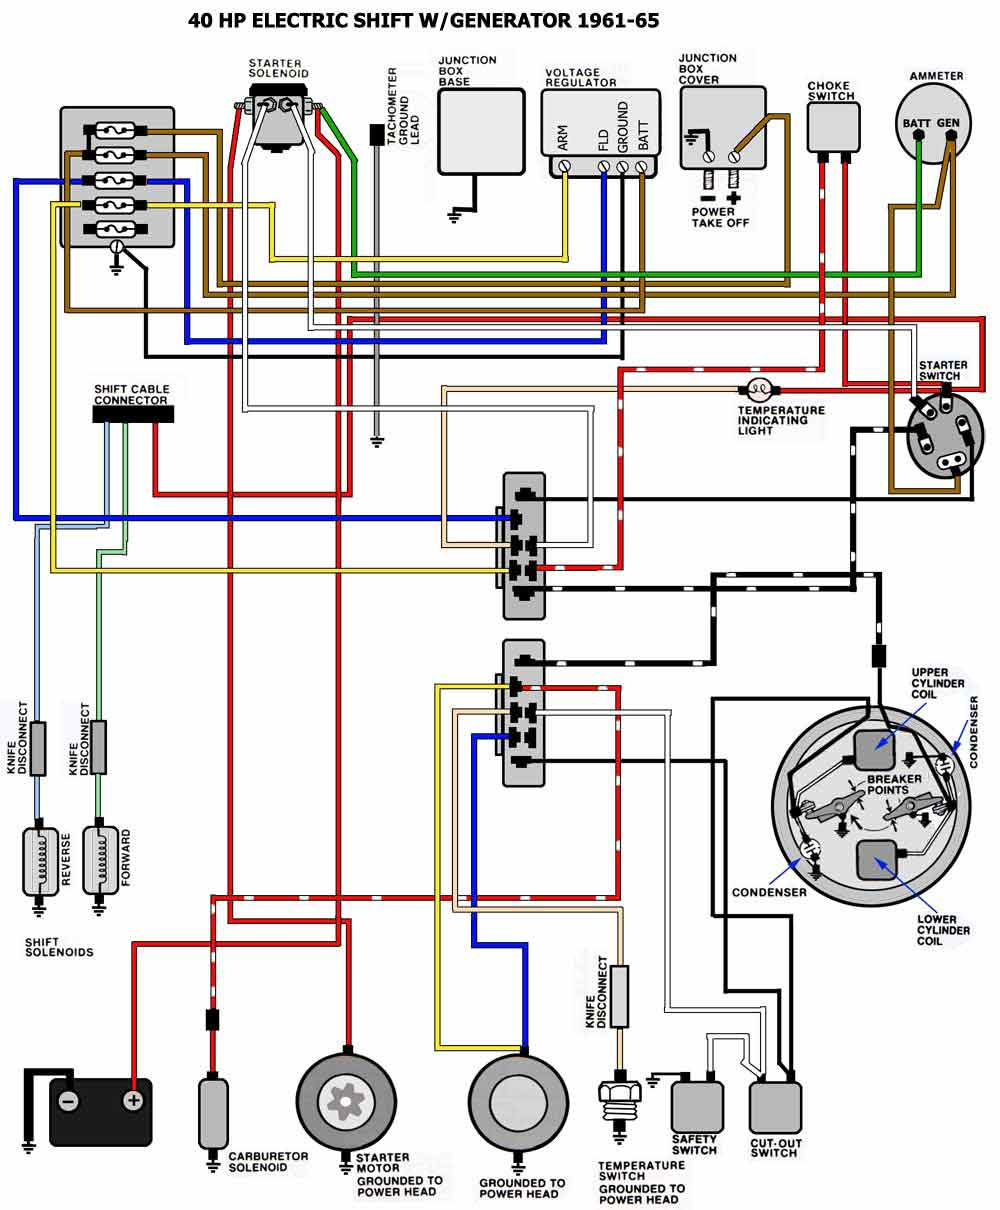 66 mustang ignition wiring diagram 2003 bmw x5 stereo evinrude johnson outboard diagrams mastertech marine 40 hp electric shift 1961 1966